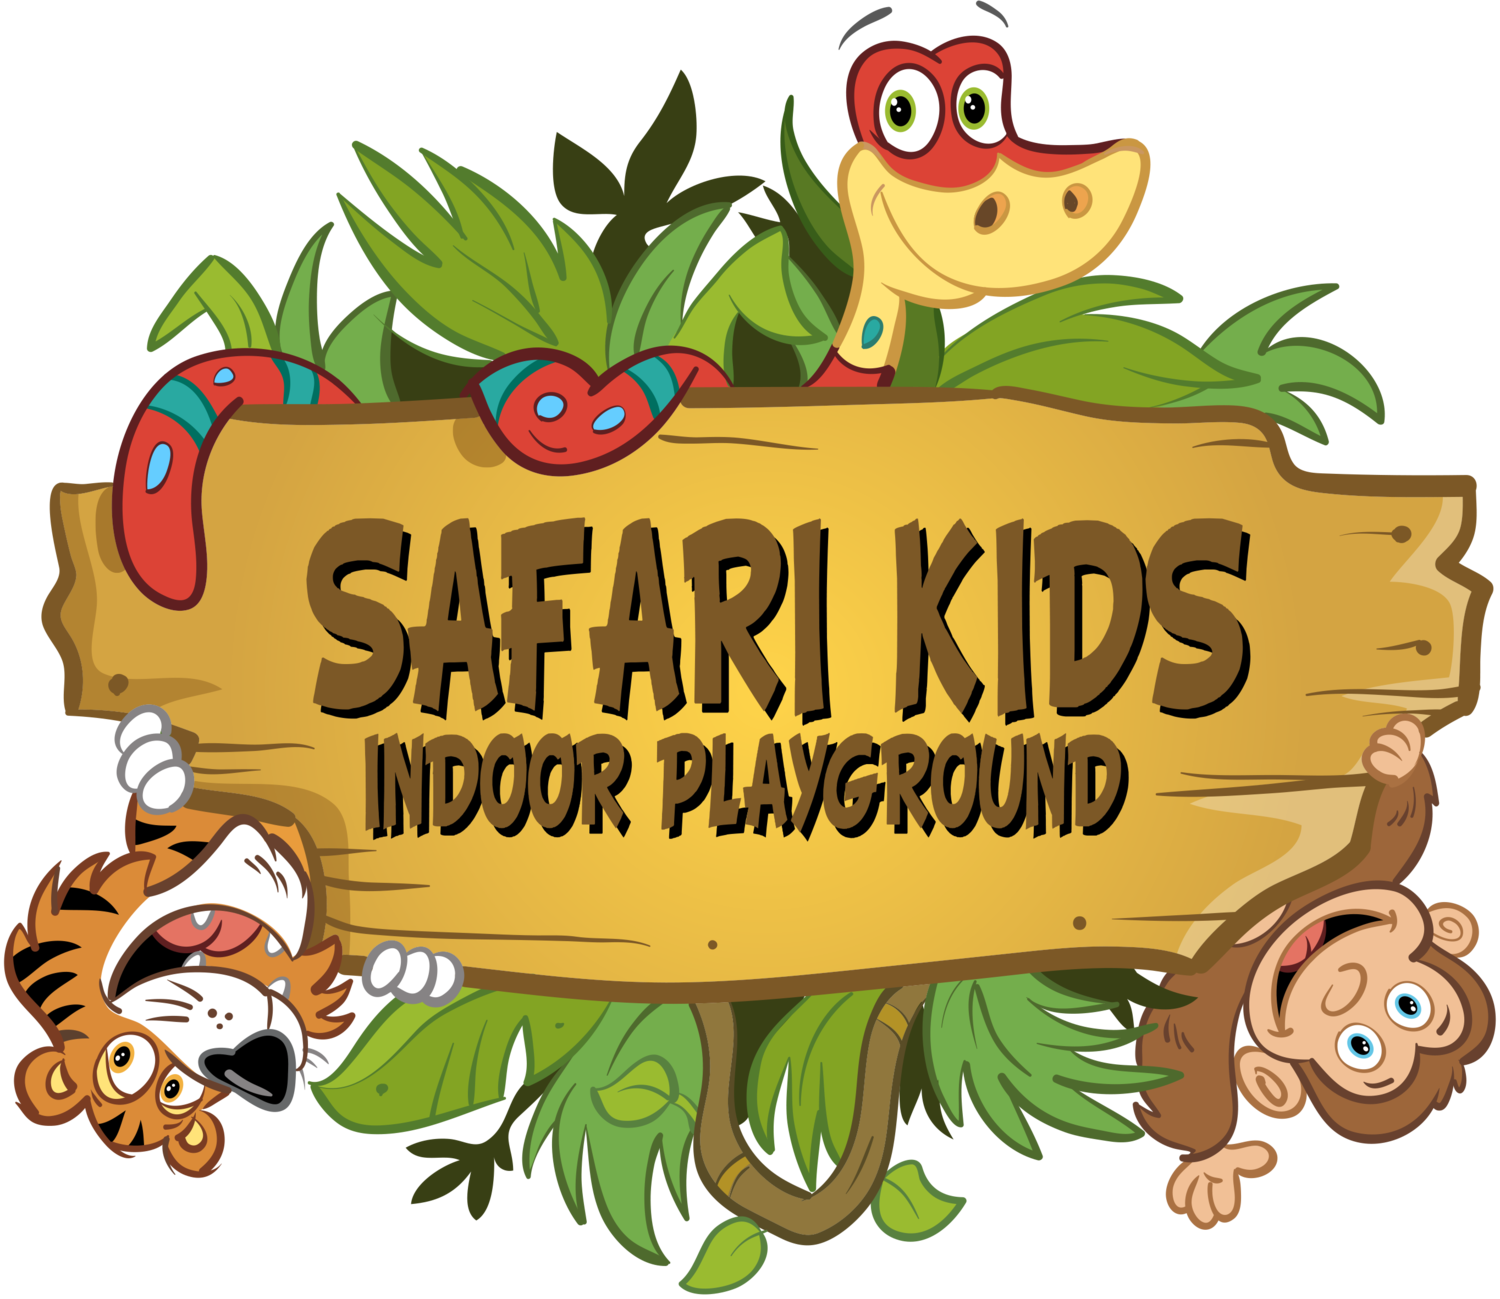 Kids playing on school playground clipart clip royalty free library Safari Kids Indoor Playground clip royalty free library